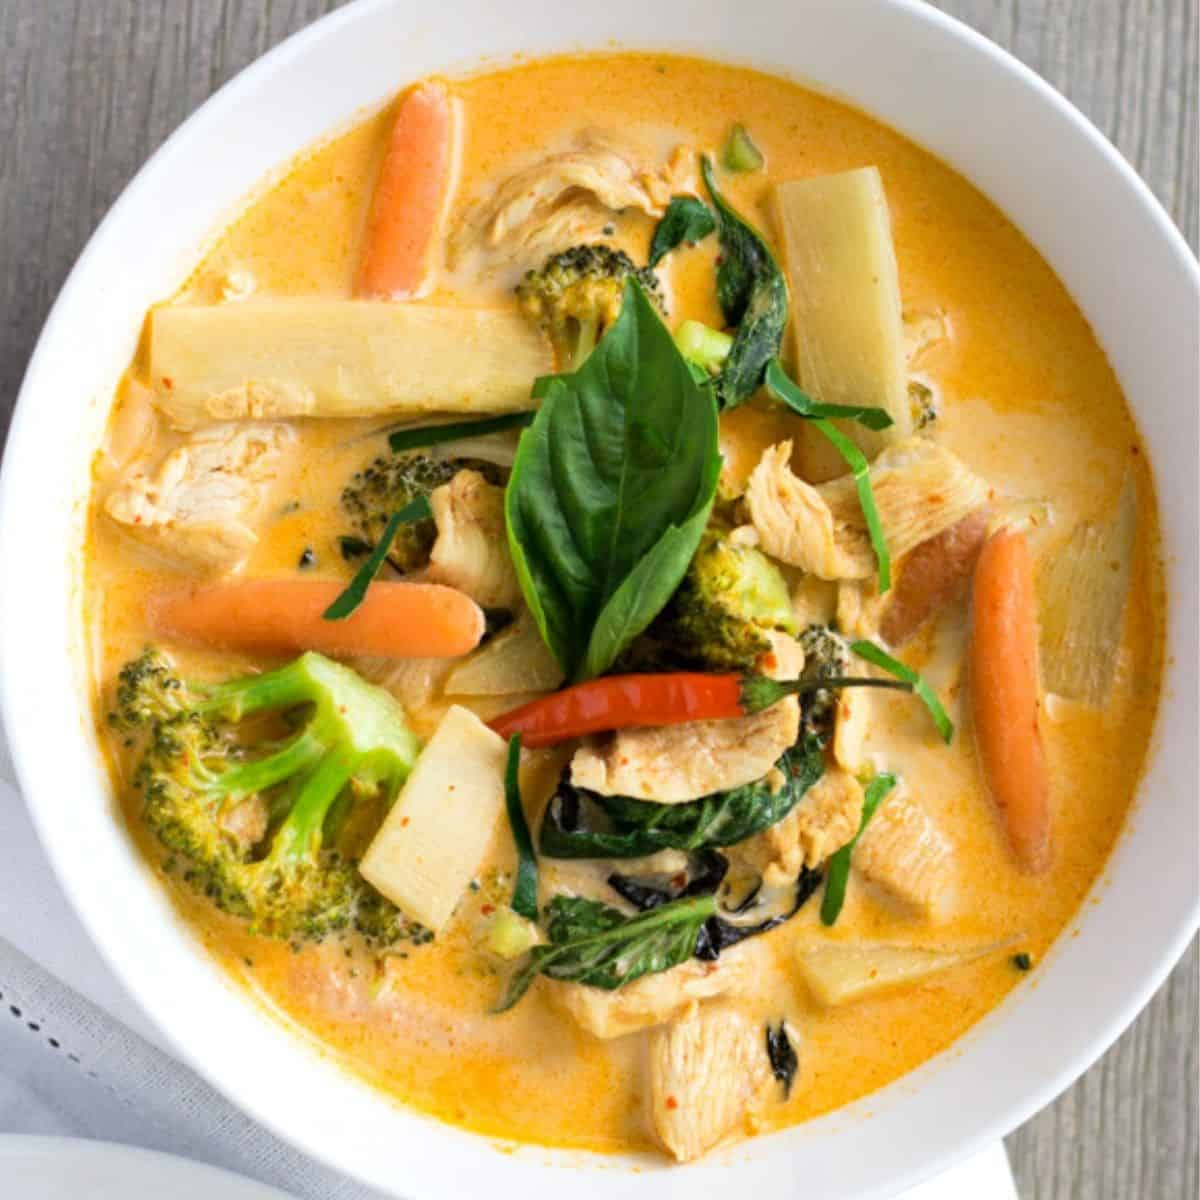 Overhead view of red curry in a white bowl with bamboo shoots, carrots, chicken, and broccoli.